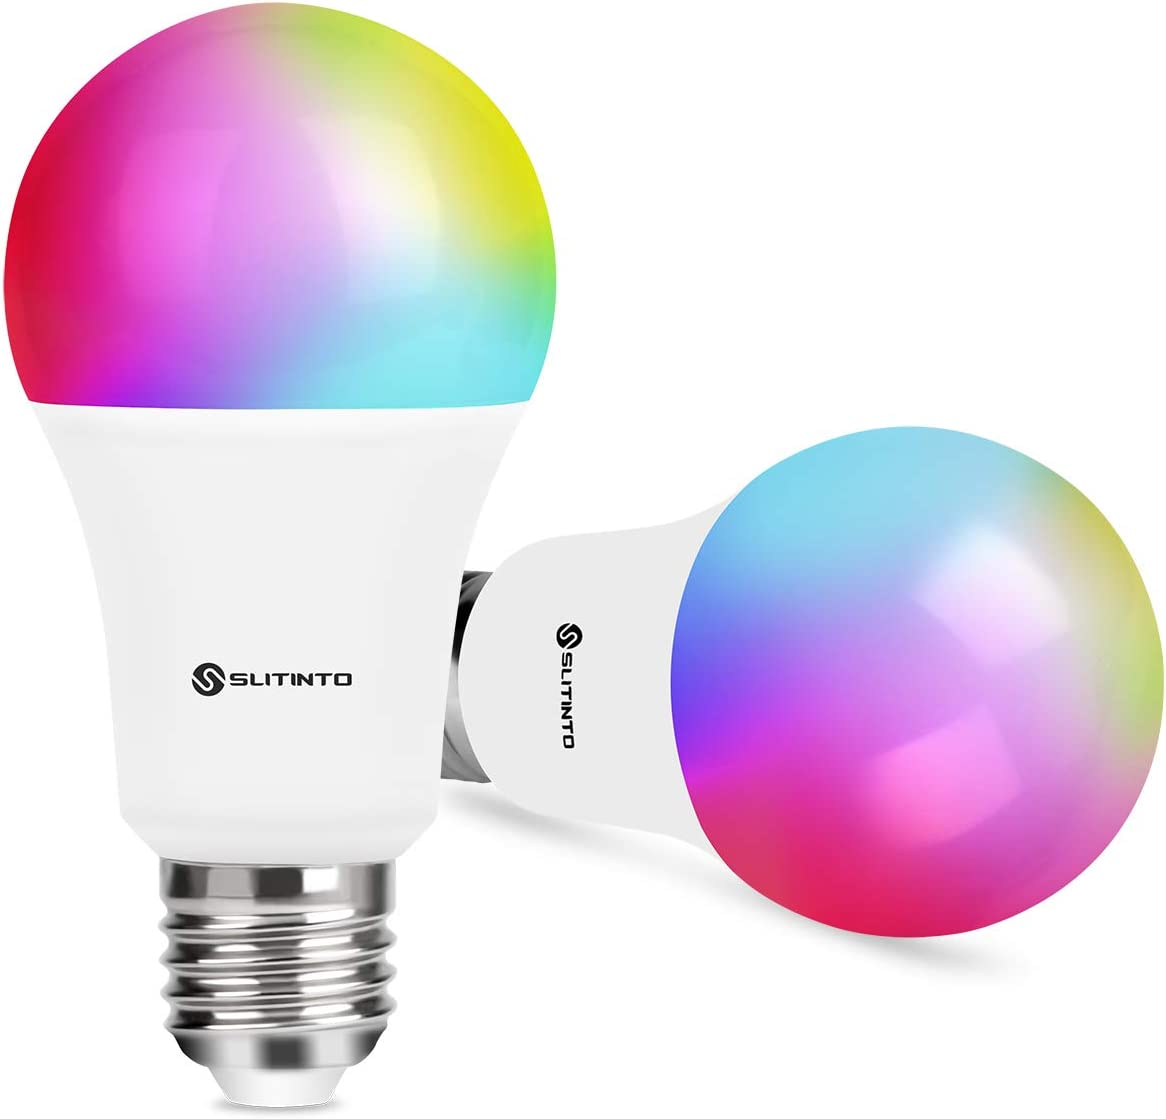 Smart WiFi LED Light Bulb Dimmable 9W 1000Lm,'slitinto E26 Multicolor Light Bulb Compatible